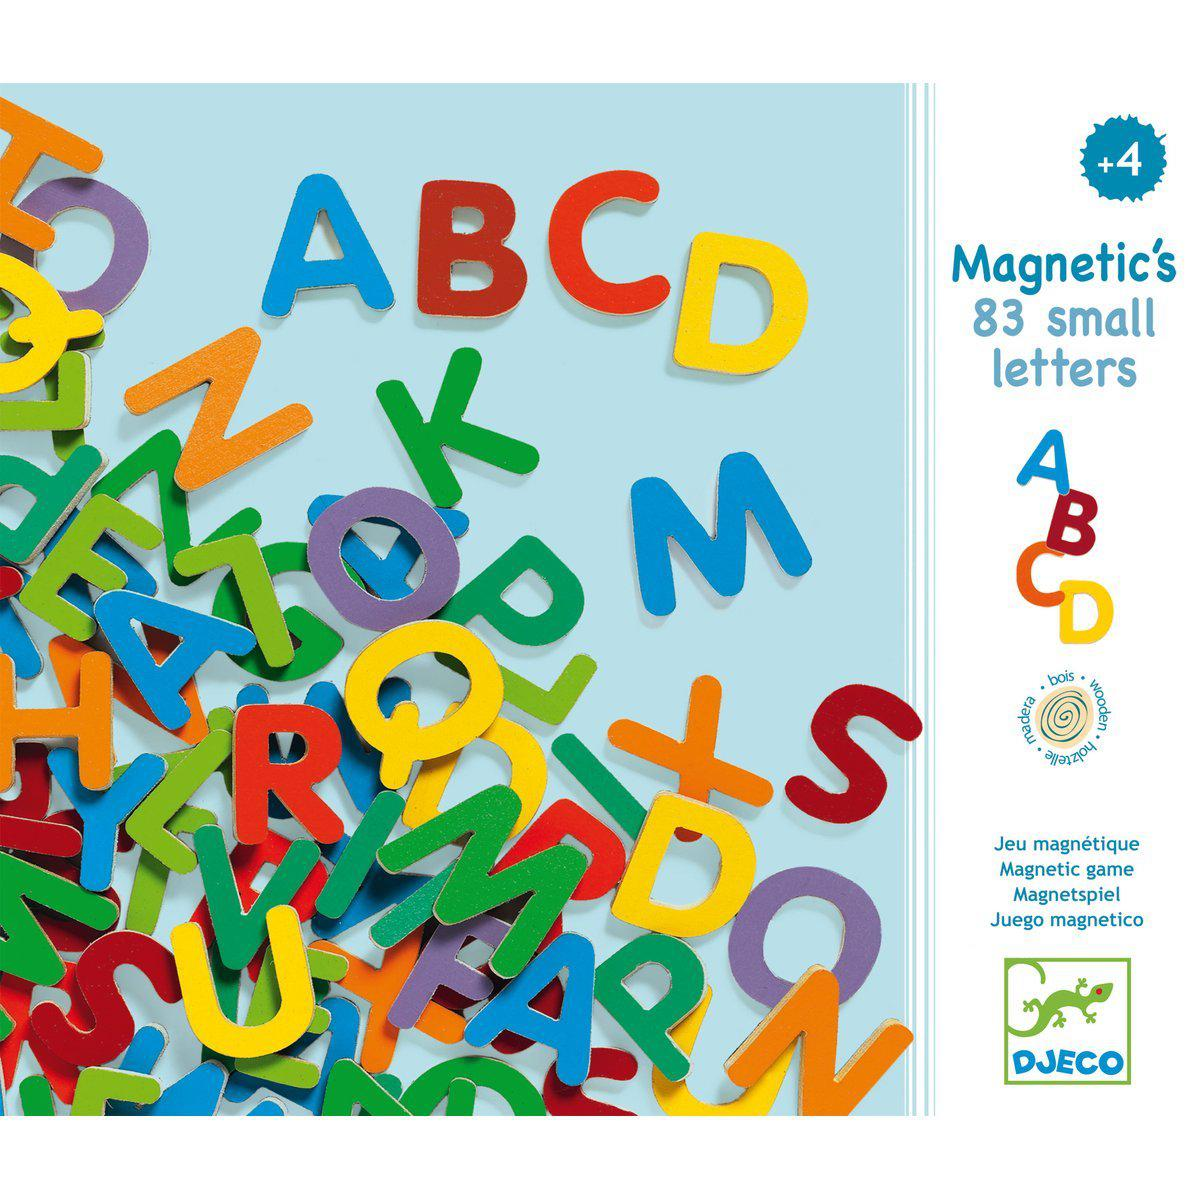 Magnets bois 83 SMALL LETTERS Djeco